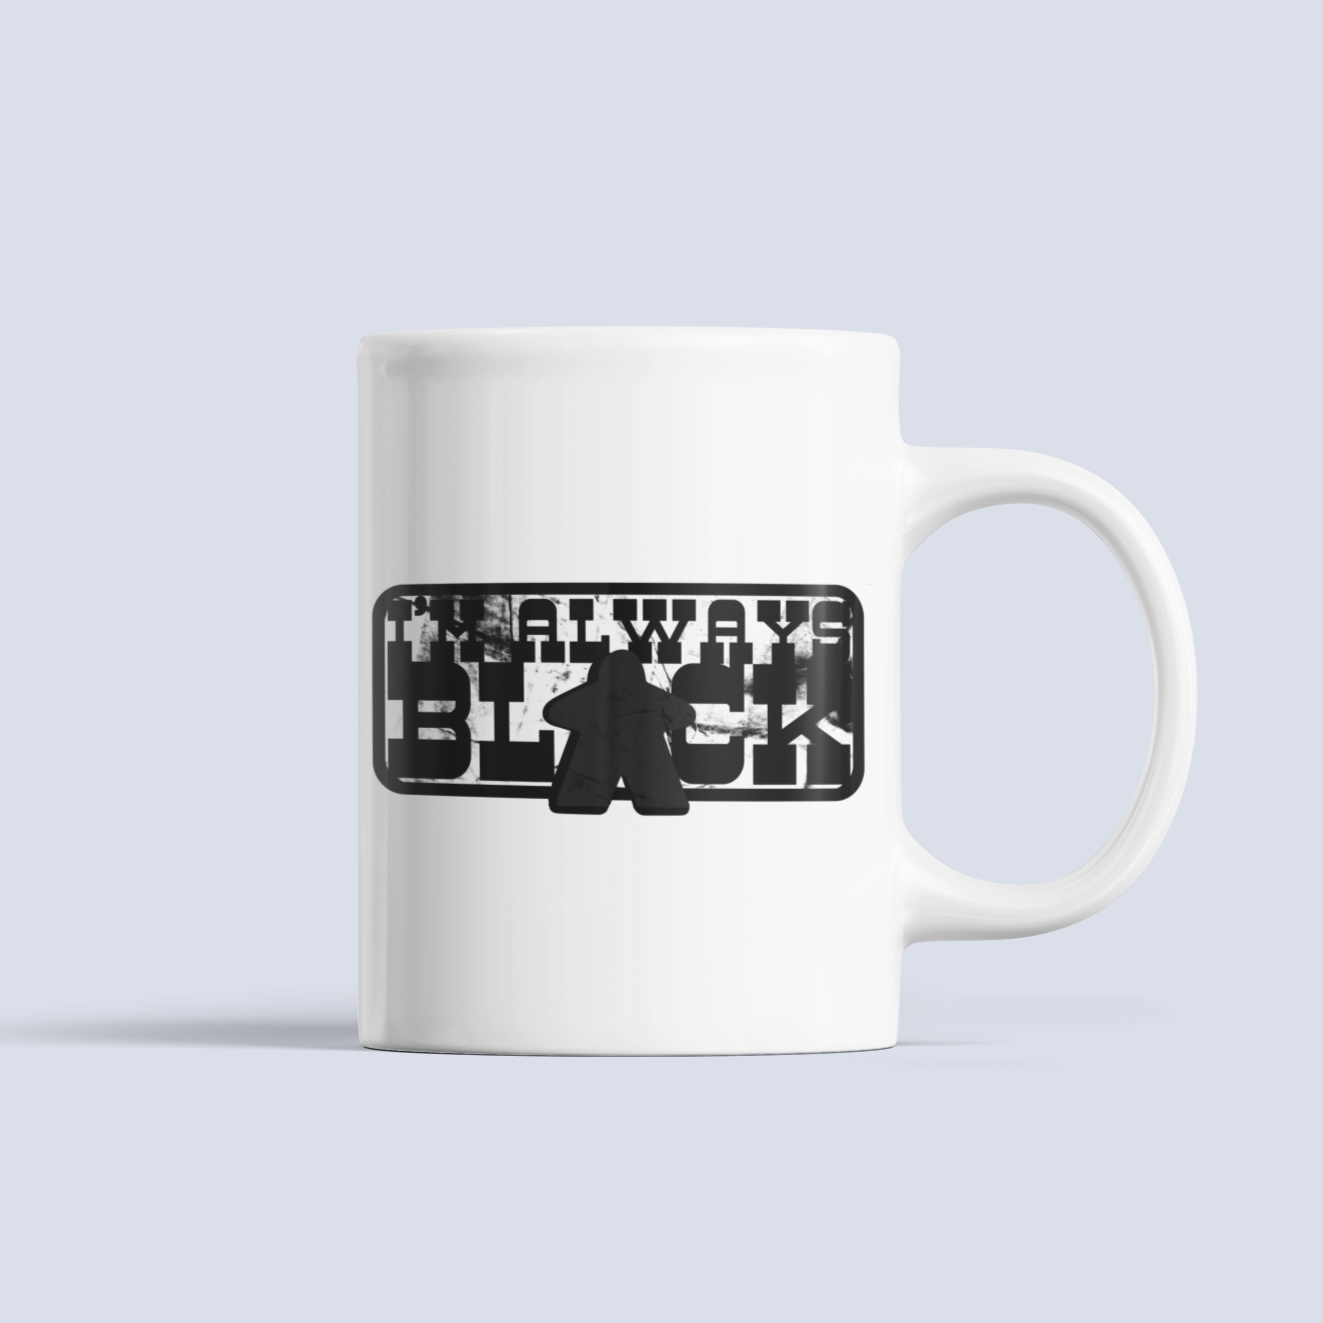 I'm Always Black Meeple Board Game Ceramic Mug